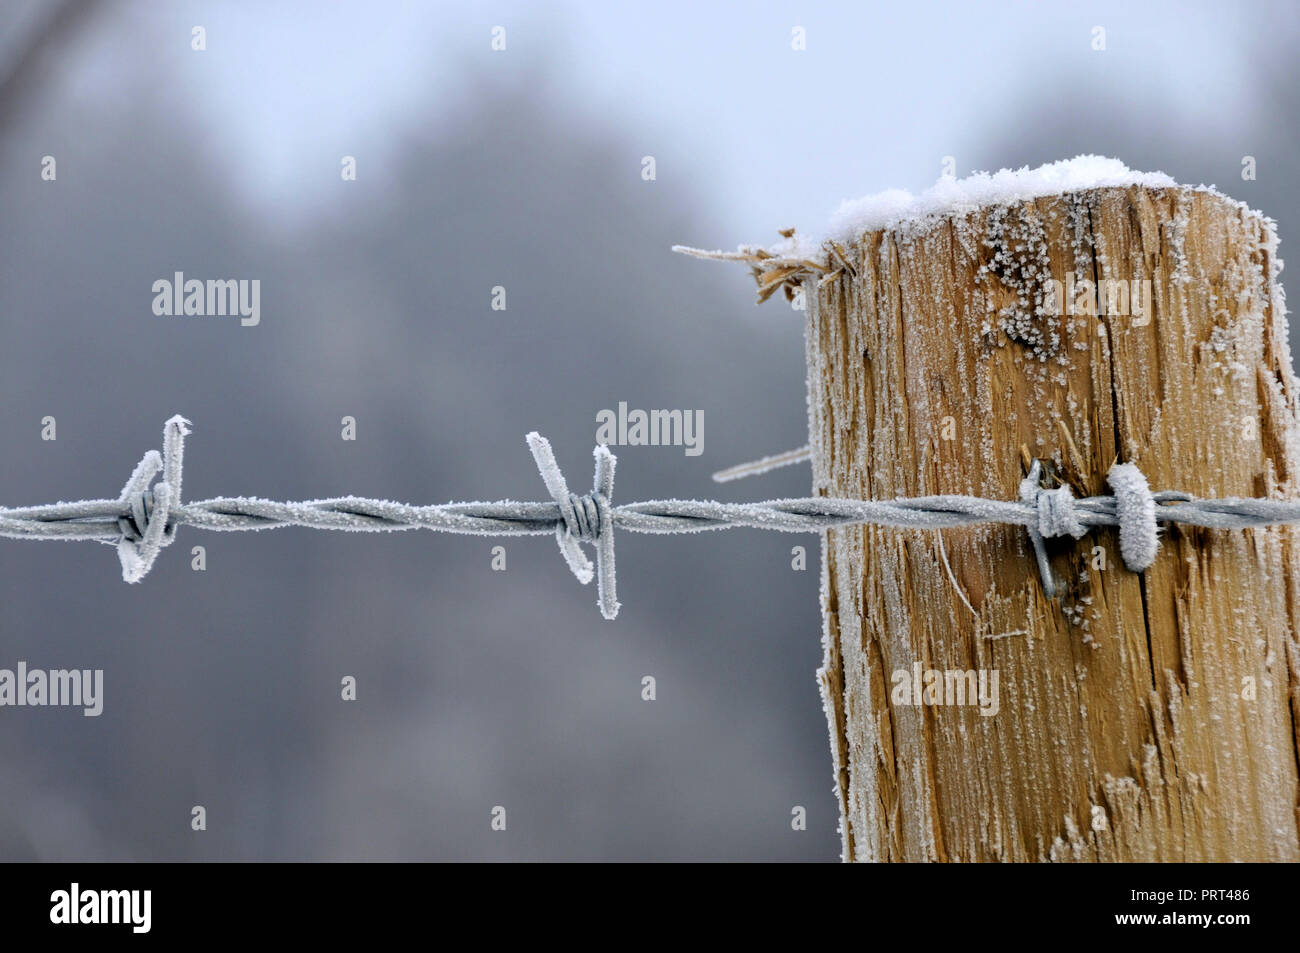 A Sharp Frost - Stock Image